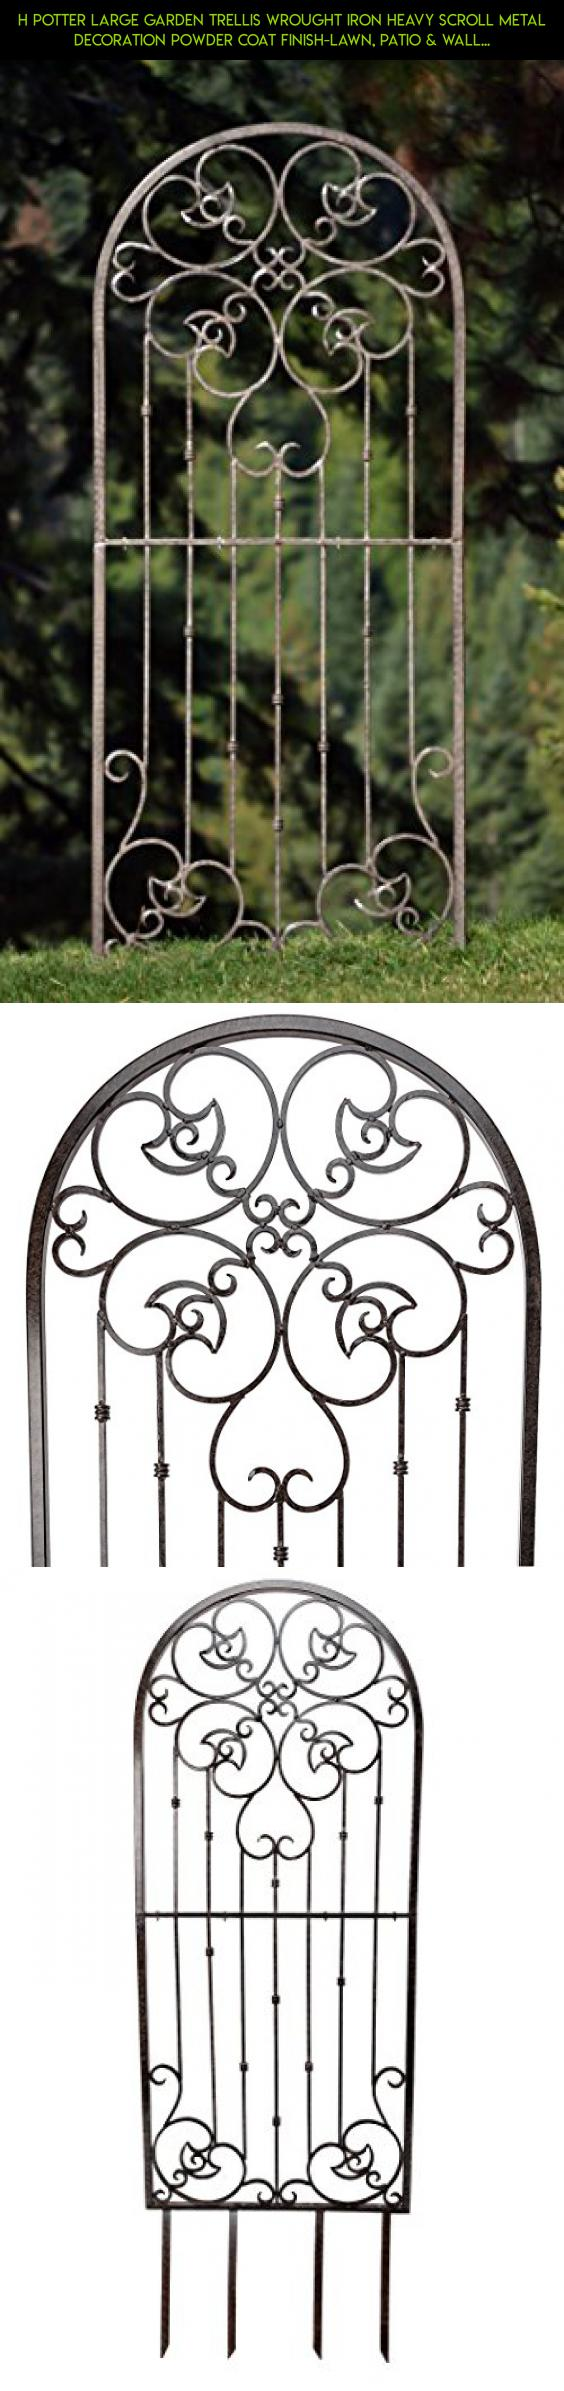 H potter large garden trellis wrought iron heavy scroll metal